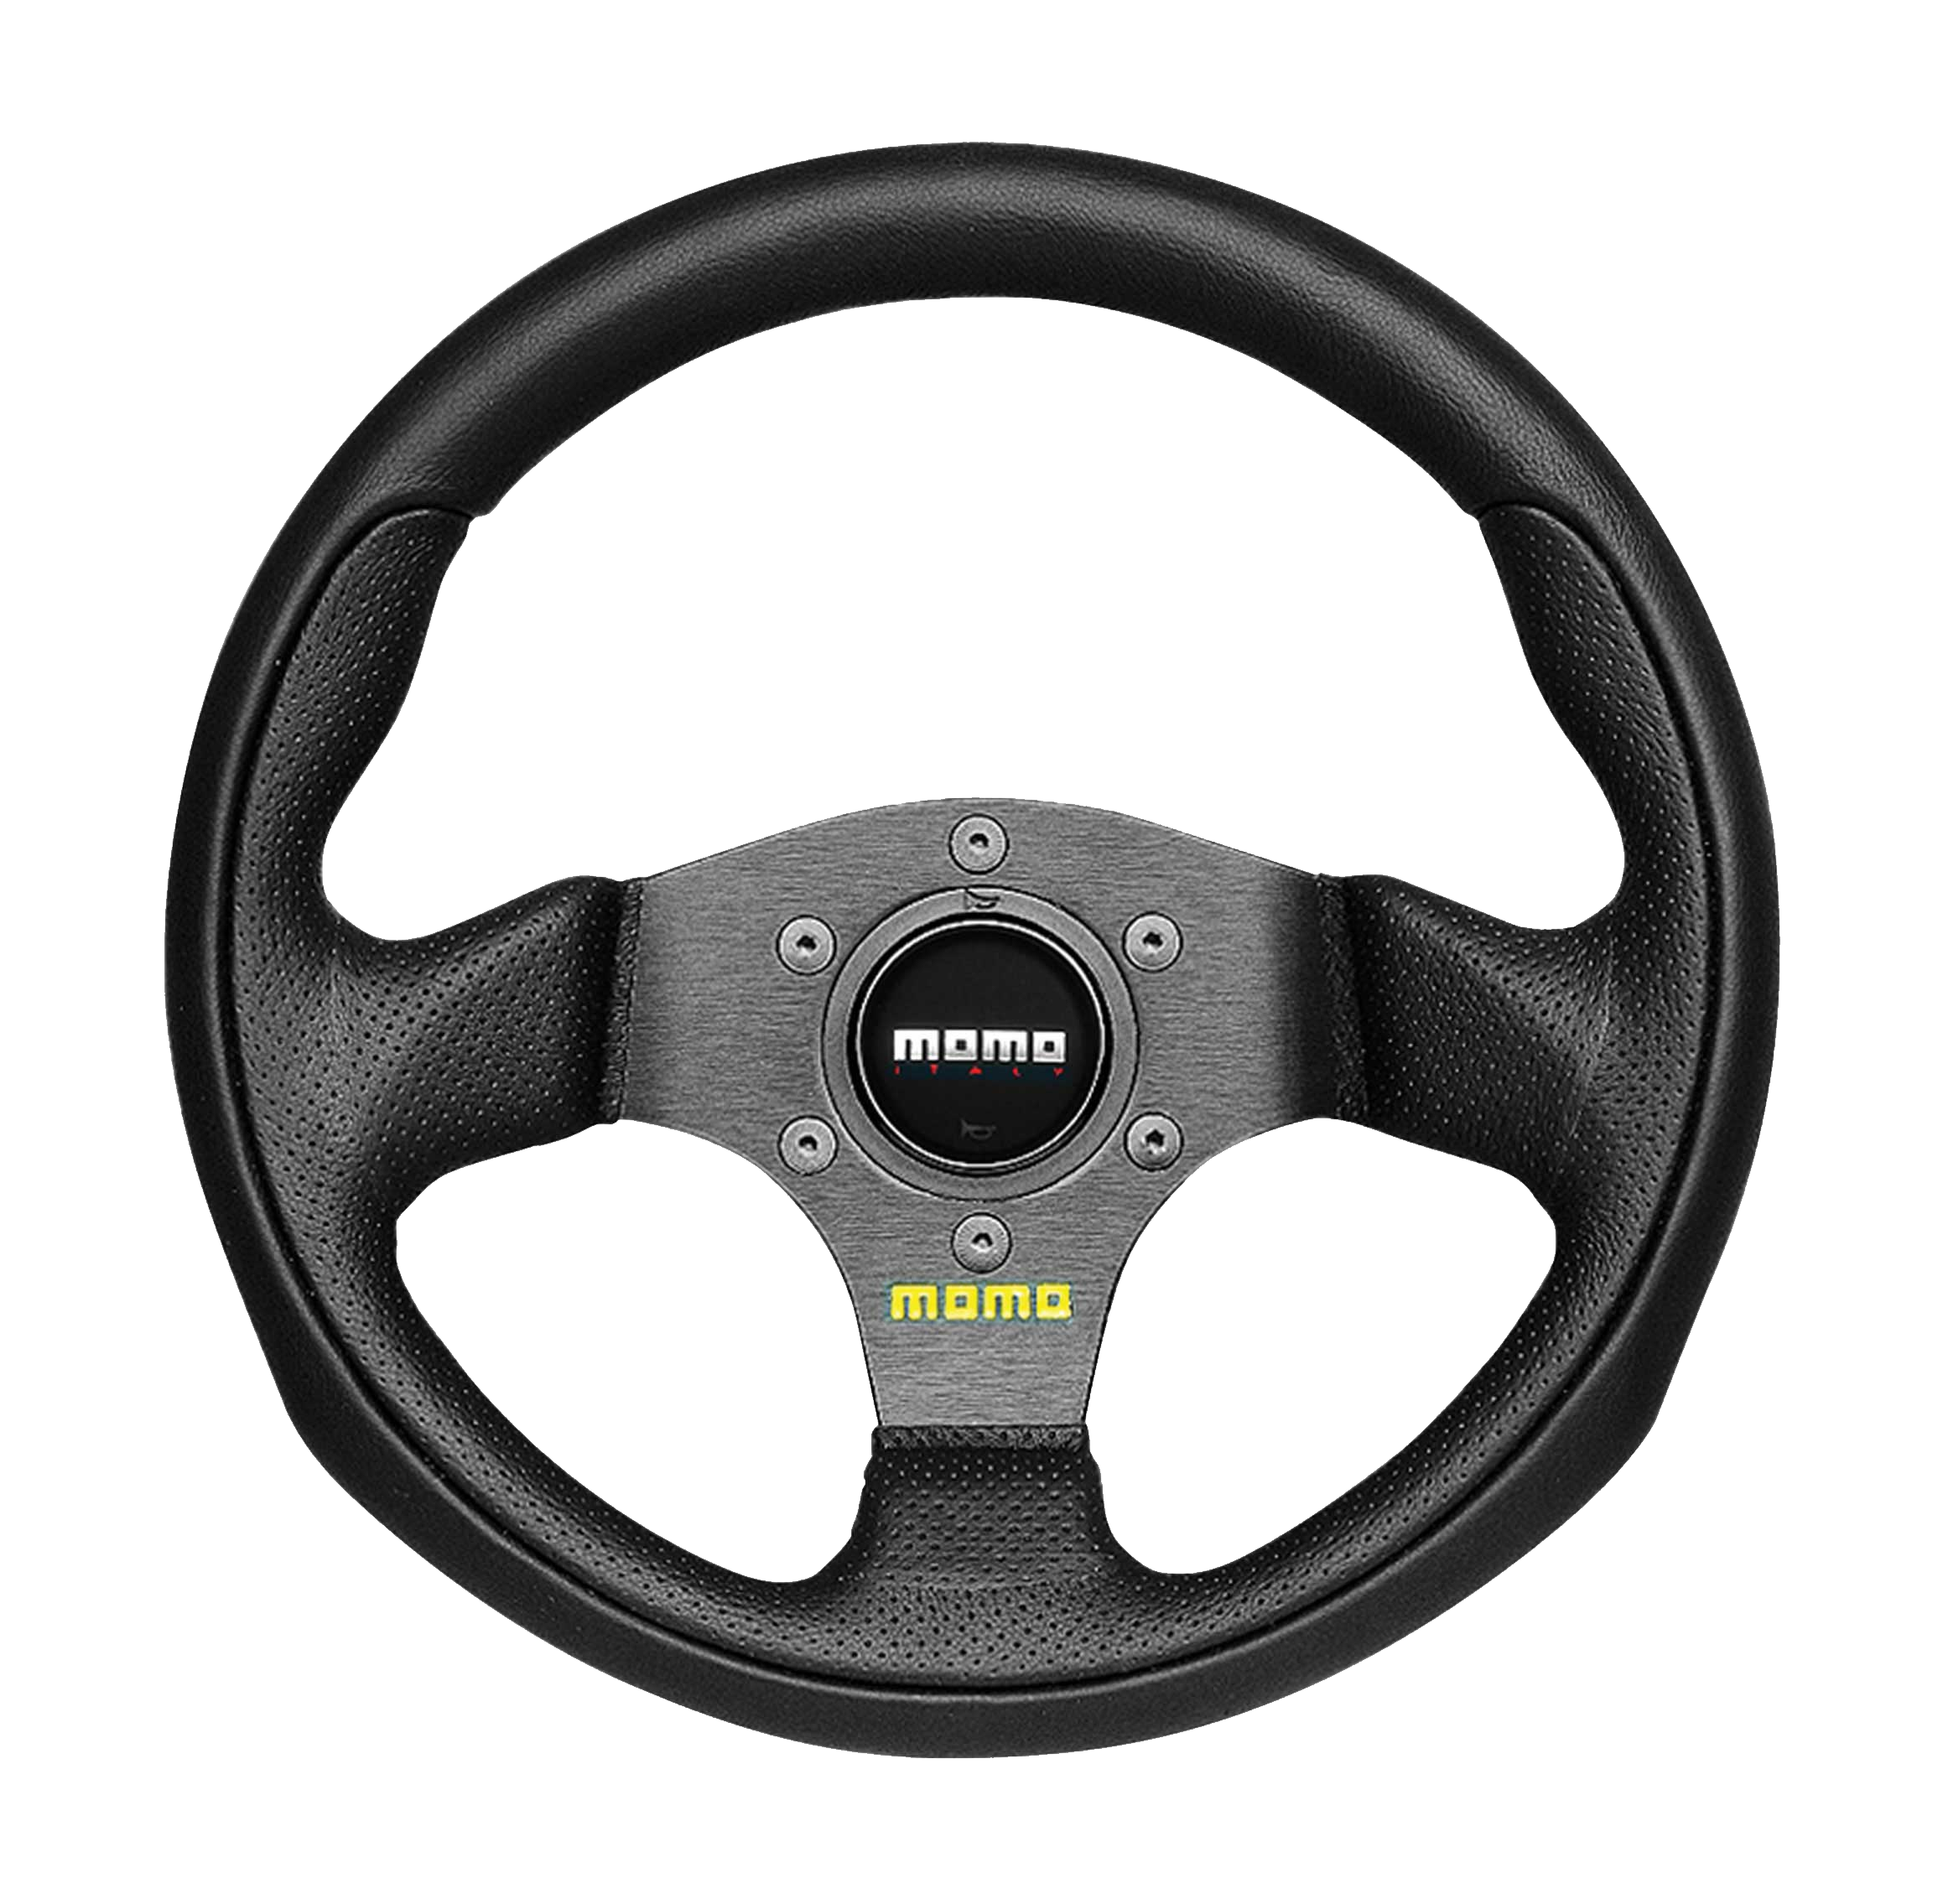 Steering wheel png images. Kettlebell clipart transparent background